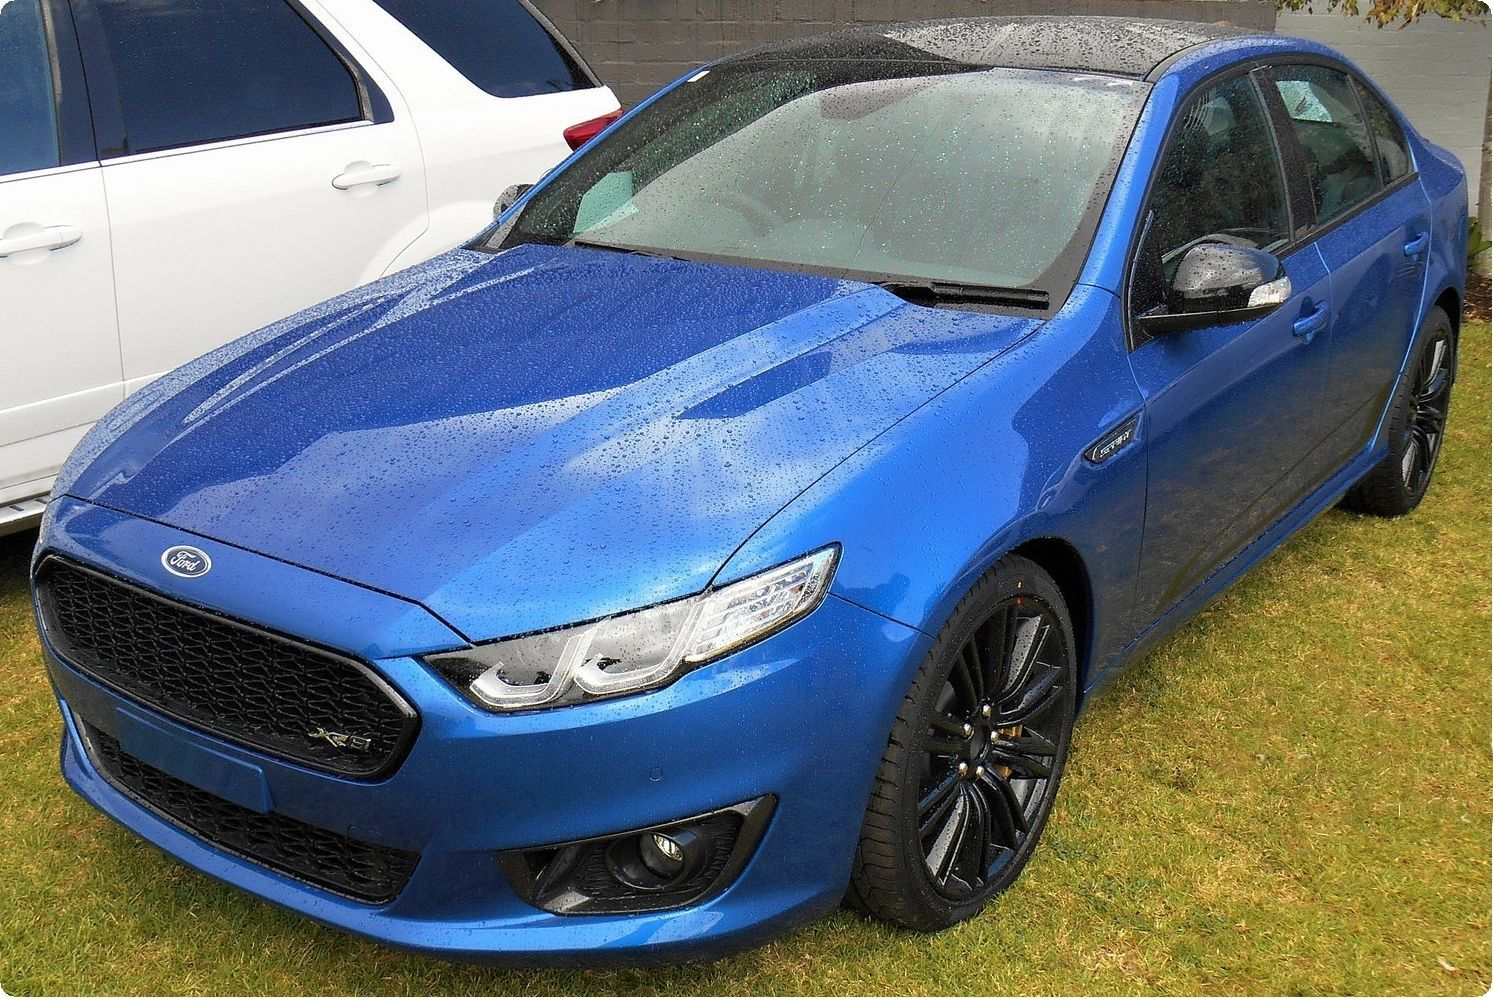 Ford Falcon Fgx Xr8 Sprint Ford Falcon Aussie Muscle Cars Super Cars